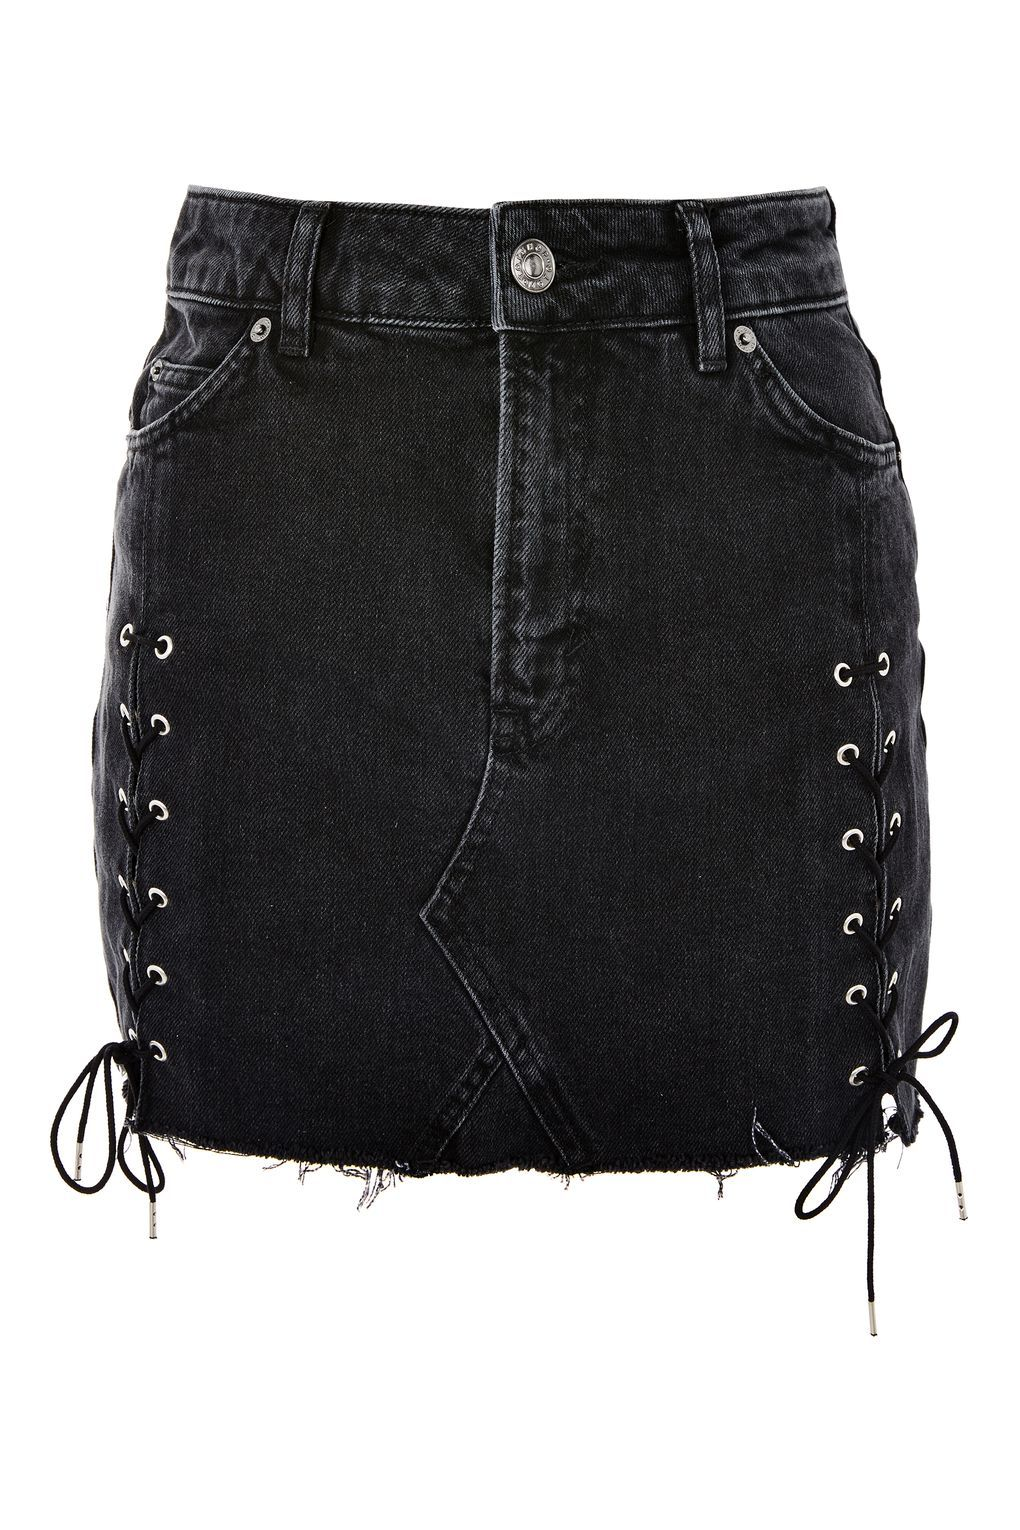 da6c7f66ce MOTO Lace Up Denim Mini Skirt in 2019 | Open House 2017 | Denim mini ...